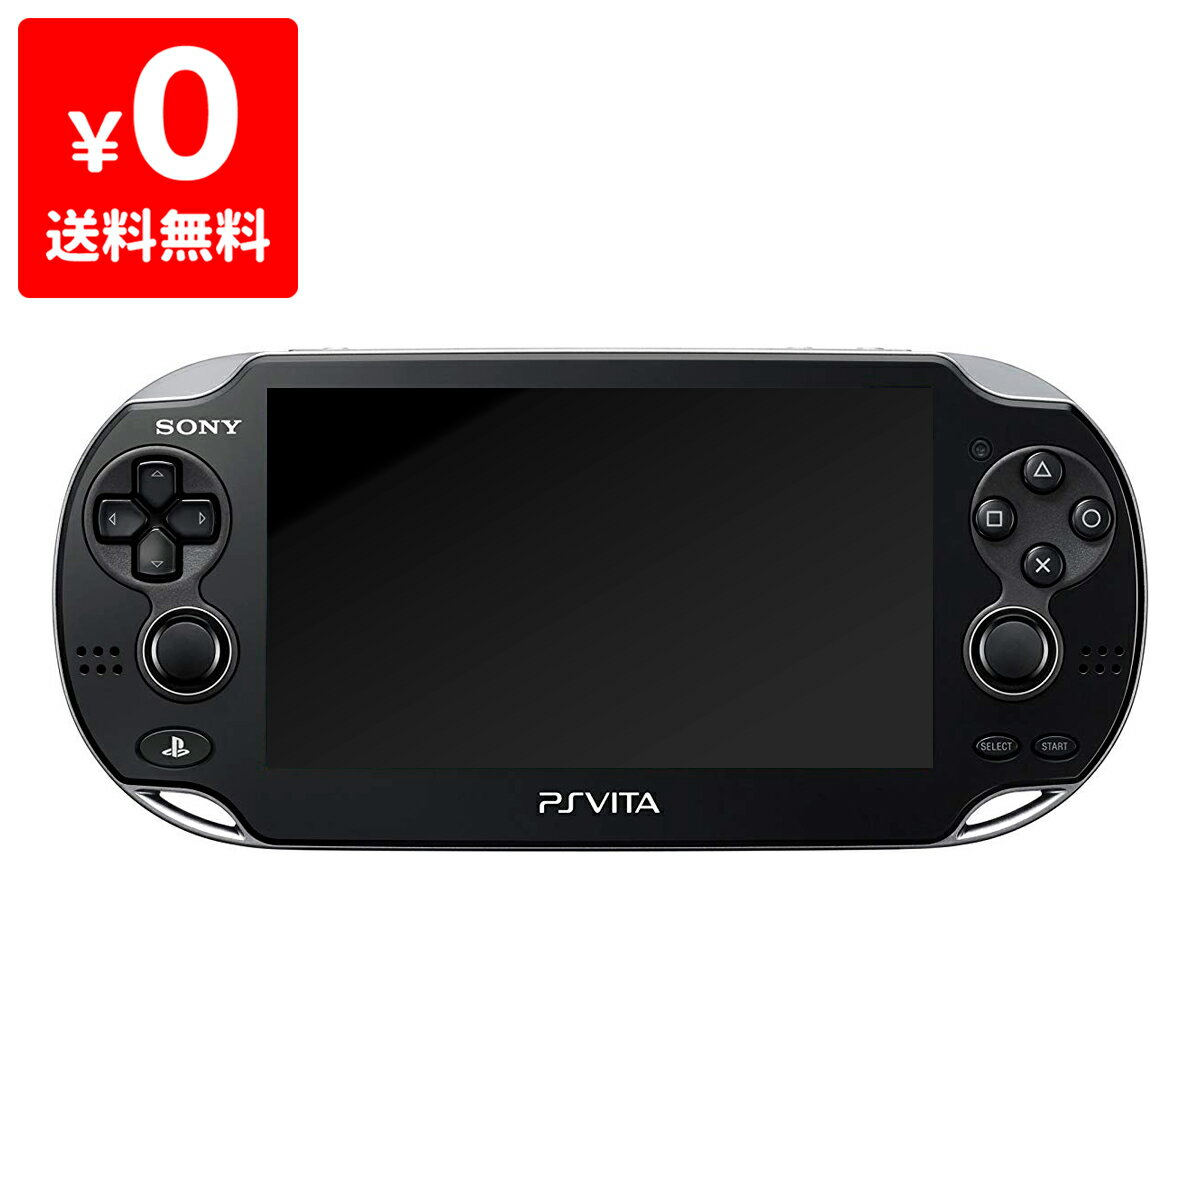 プレイステーション・ヴィータ, 本体 PSVita PlayStation Vita 3GWi-Fi (PCH-1100AB01) PlayStationVita SONY 4948872412940